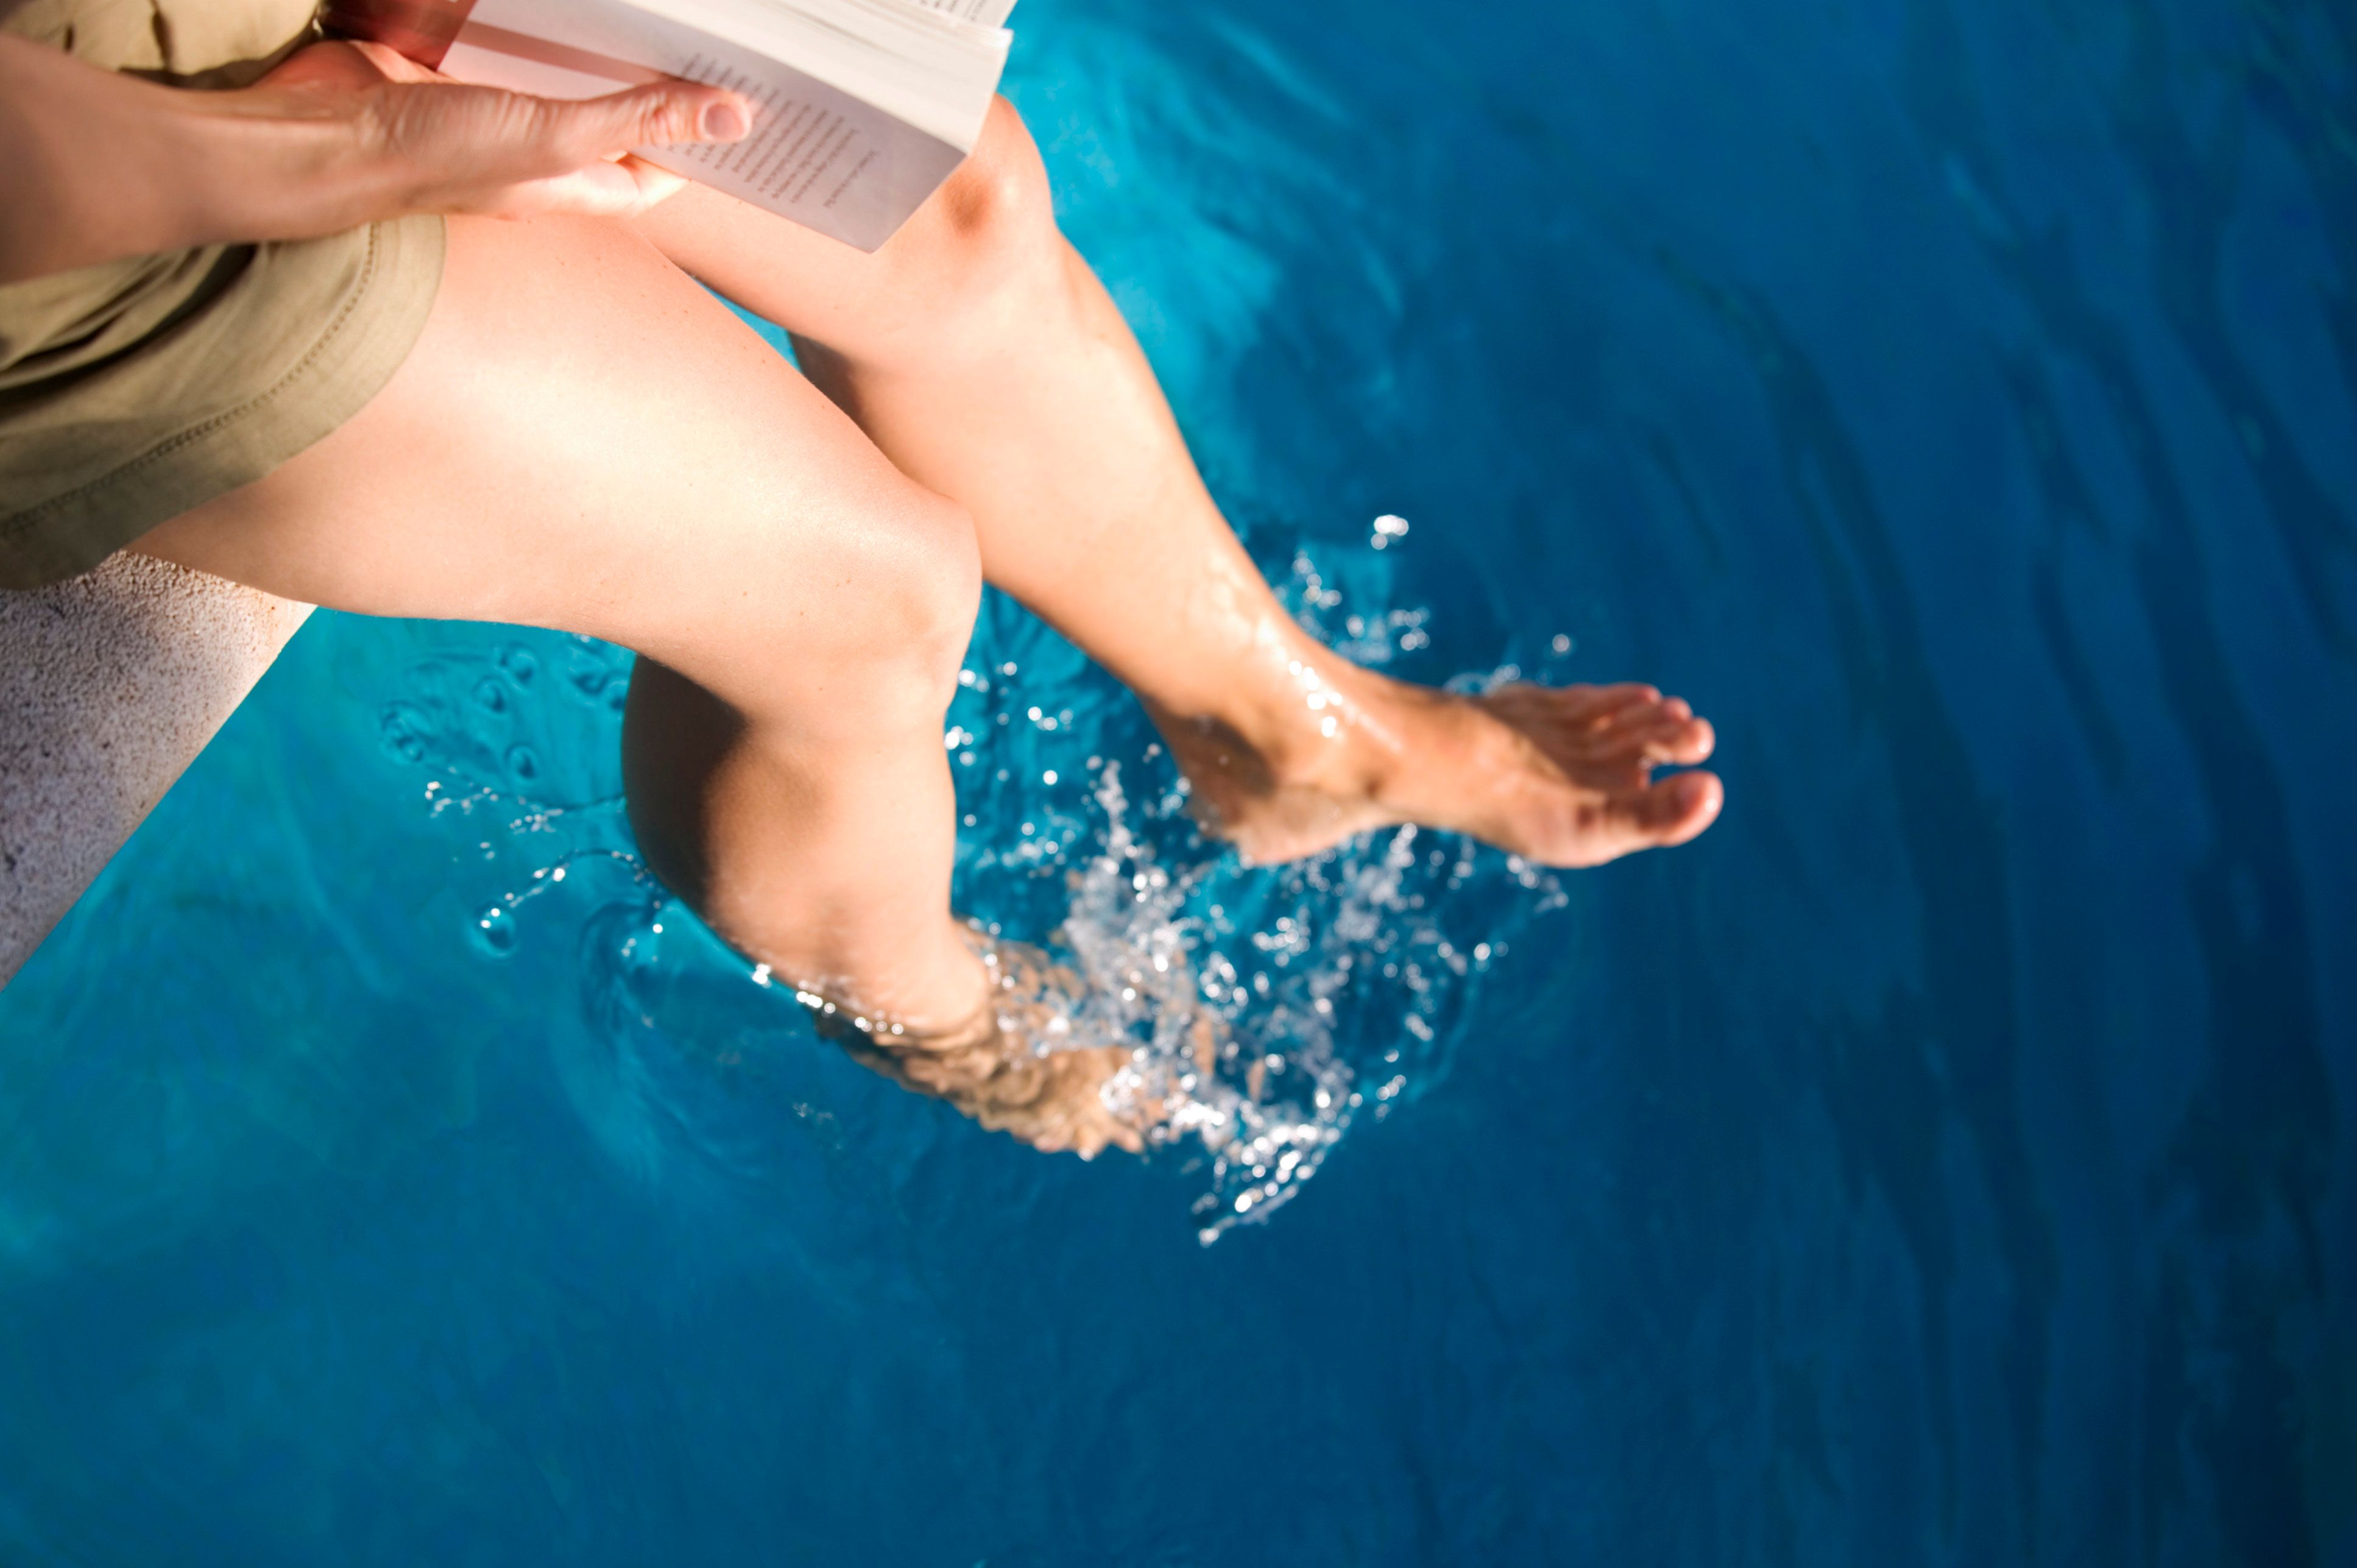 Woman sitting with feet in pool